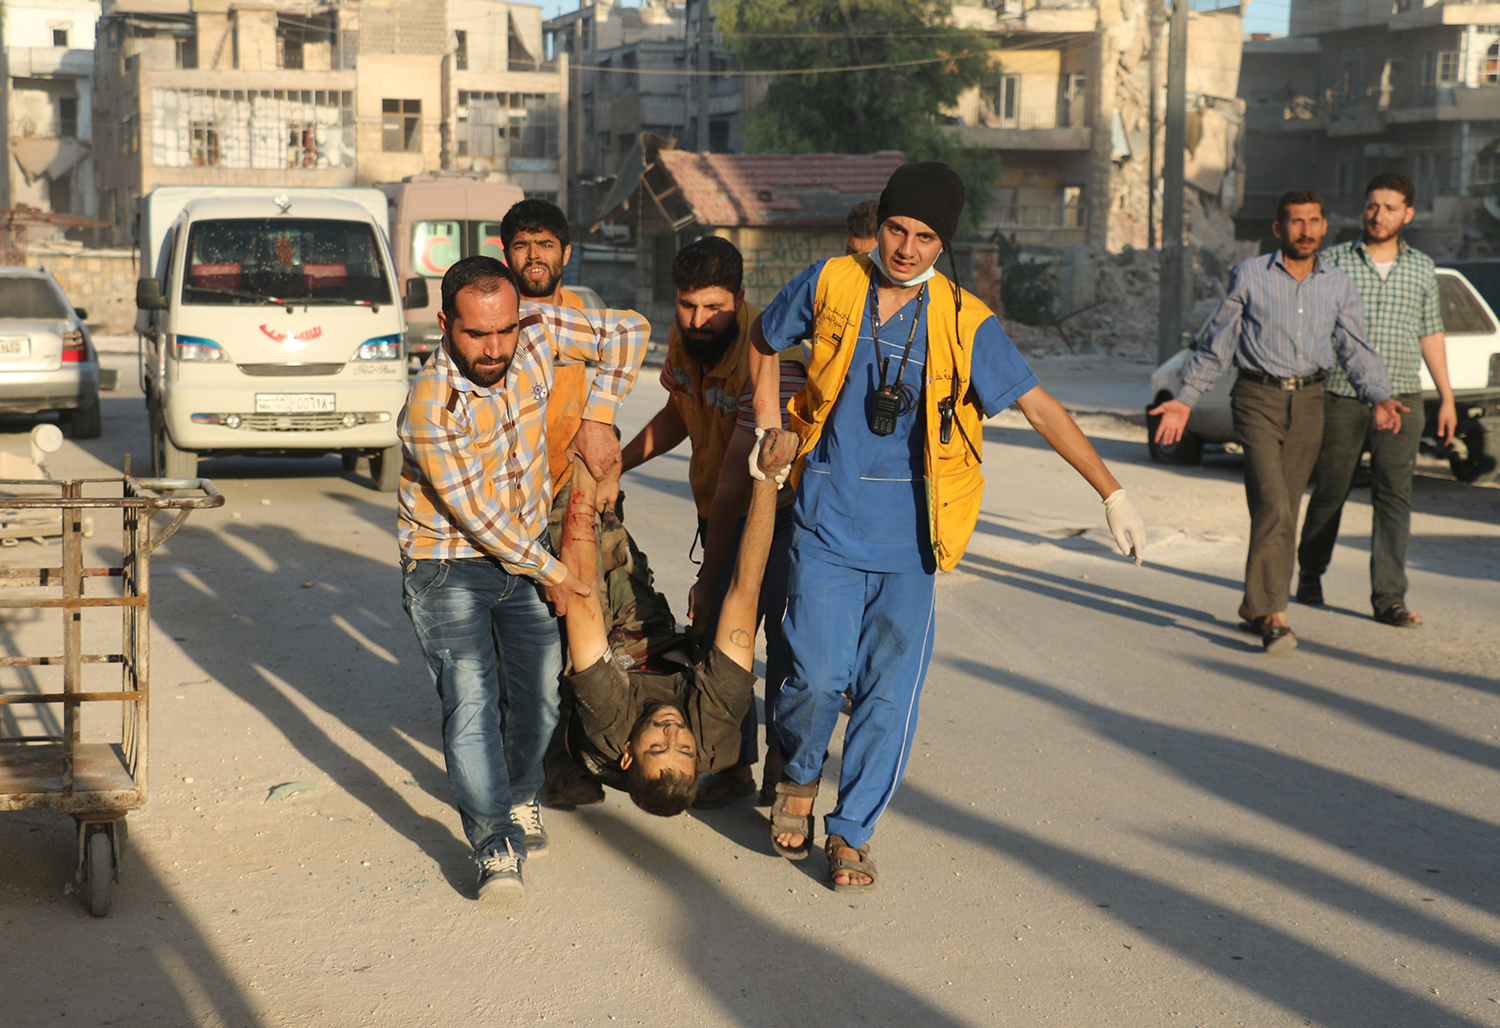 EDITORS NOTE: Graphic content / Syrian rescue workers and residents carry the body of a victim following a reported air strike in the rebel-held Salaheddin district of Aleppo on September 25, 2016. The UN Security Council met for urgent talks as Syrian and Russian warplanes pounded rebel-held east Aleppo in the worst surge of bombing to hit the devastated city in years. Britain, France and the United States called the emergency meeting to turn up pressure on Russia and press demands that it rein in its ally Syria to halt the intense bombing campaign on Aleppo. / AFP PHOTO / AMEER ALHALBI / TT / kod 444